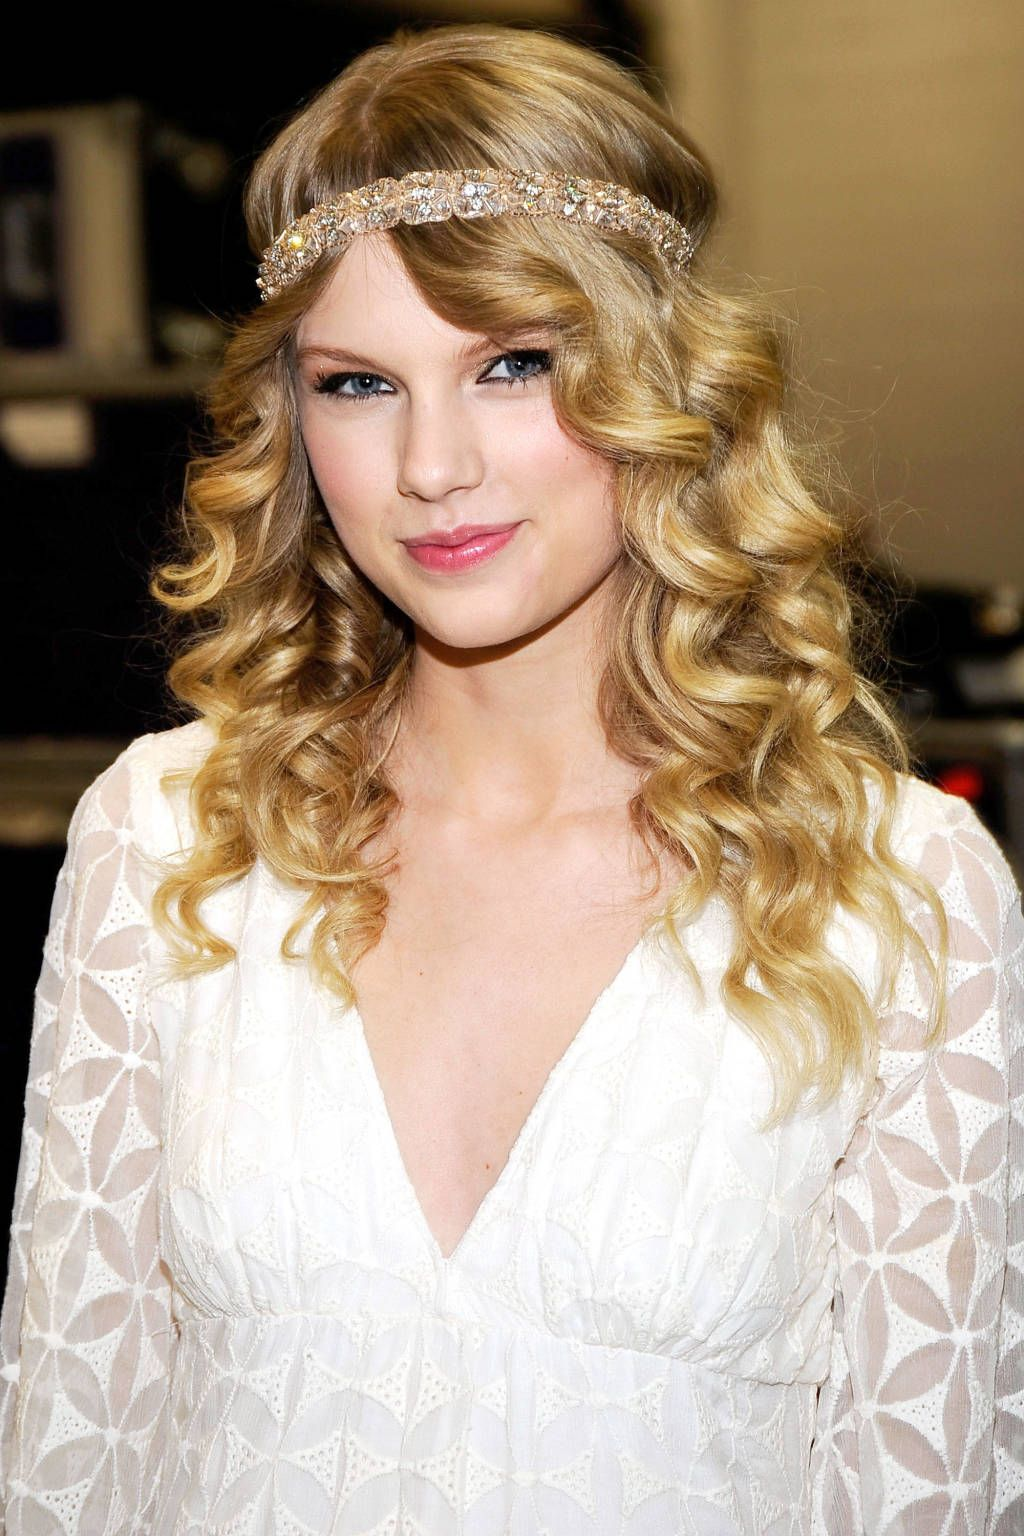 taylor swift's amazing beauty transformation through the